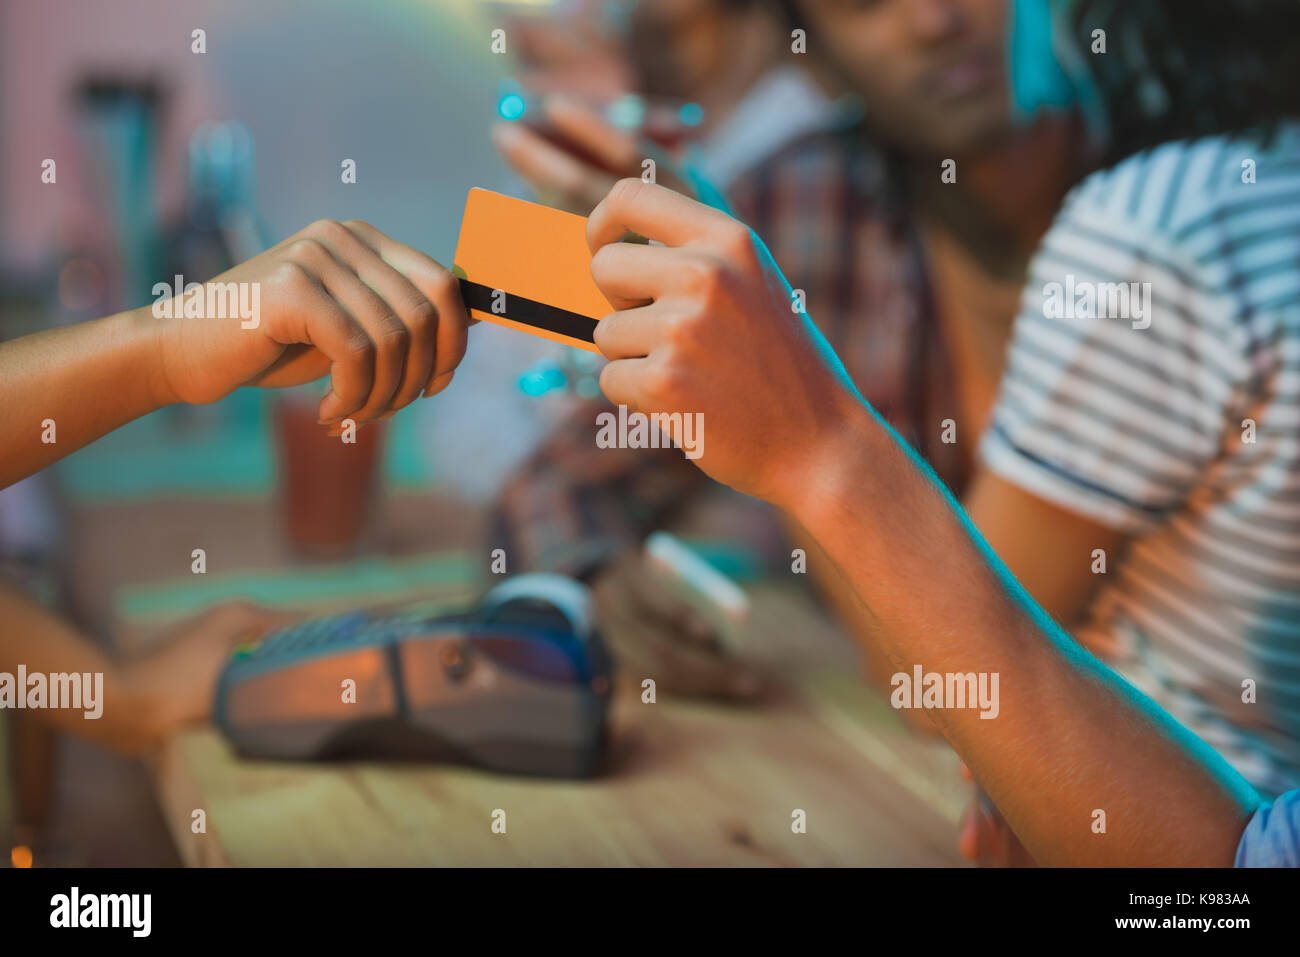 payment with credit card - Stock Image